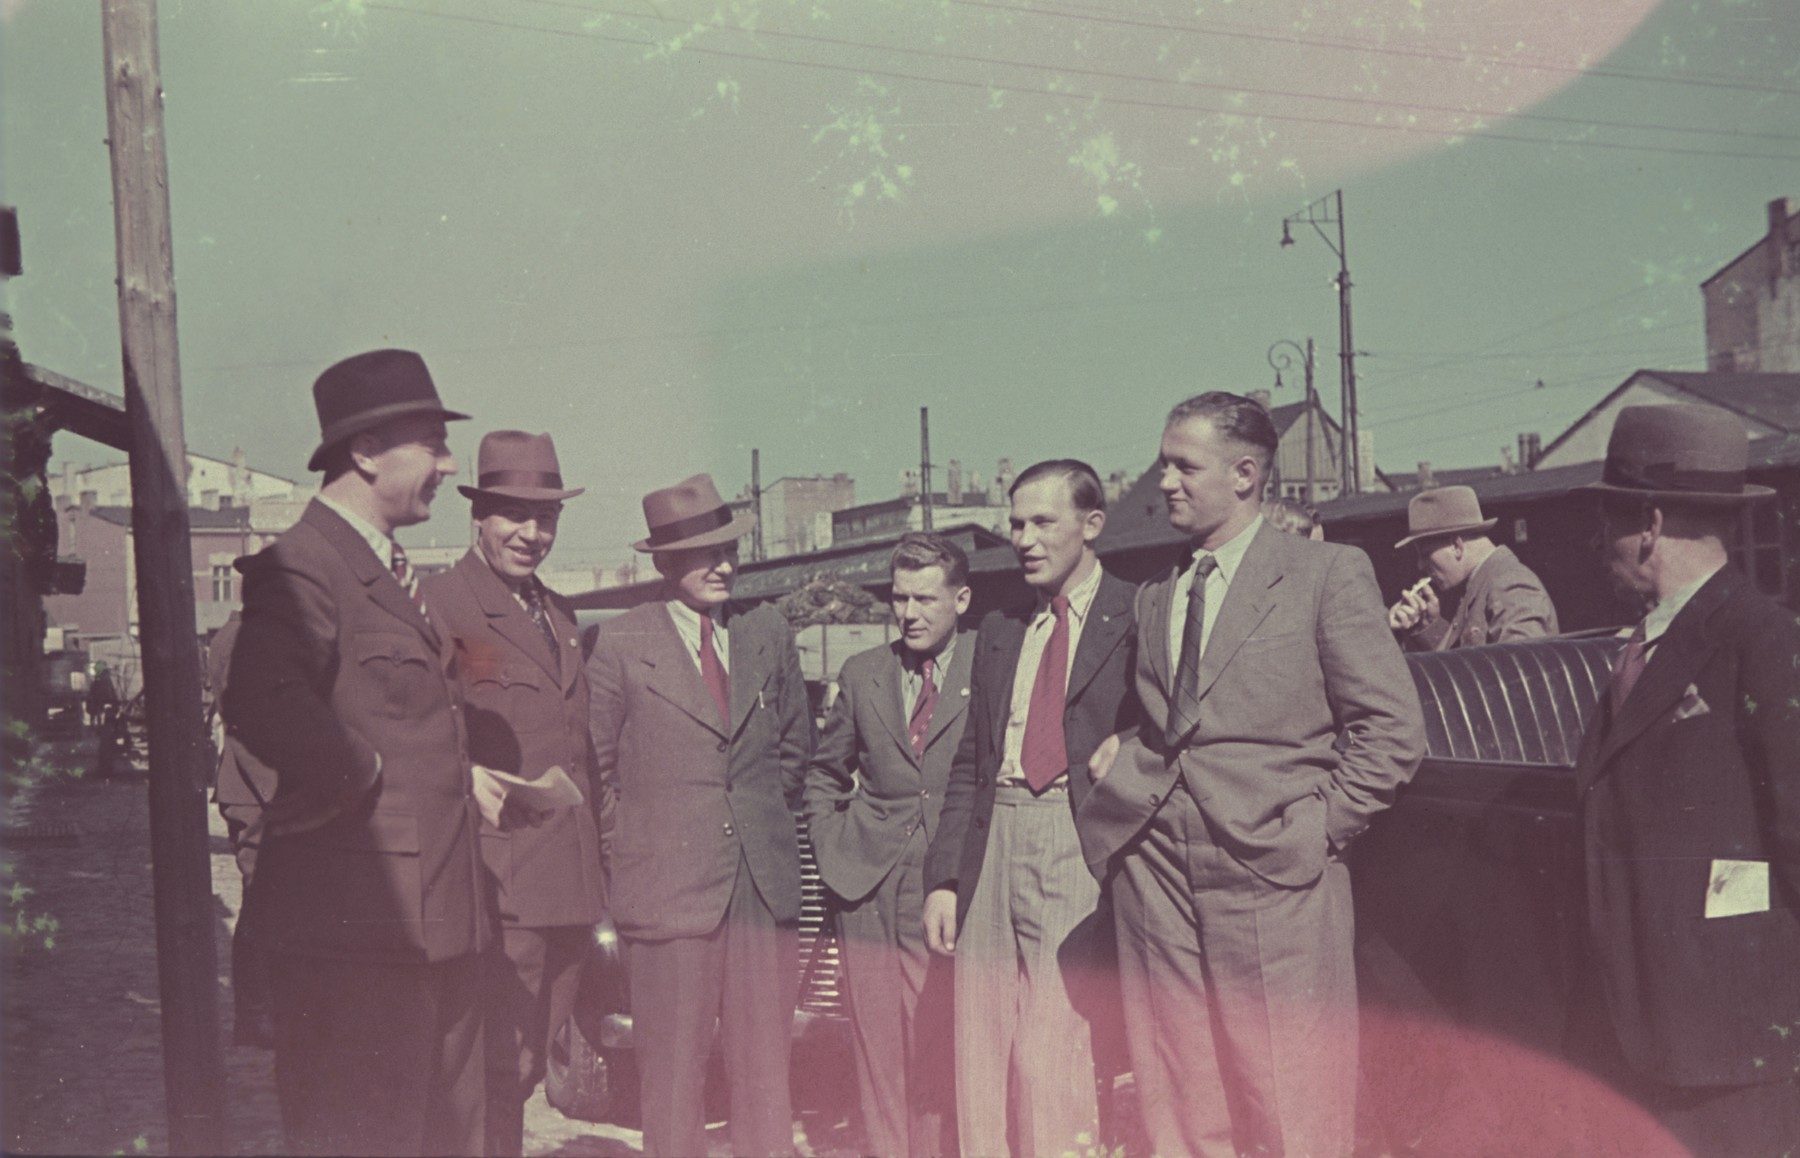 A group of men gather on a street probably in or near Lodz.